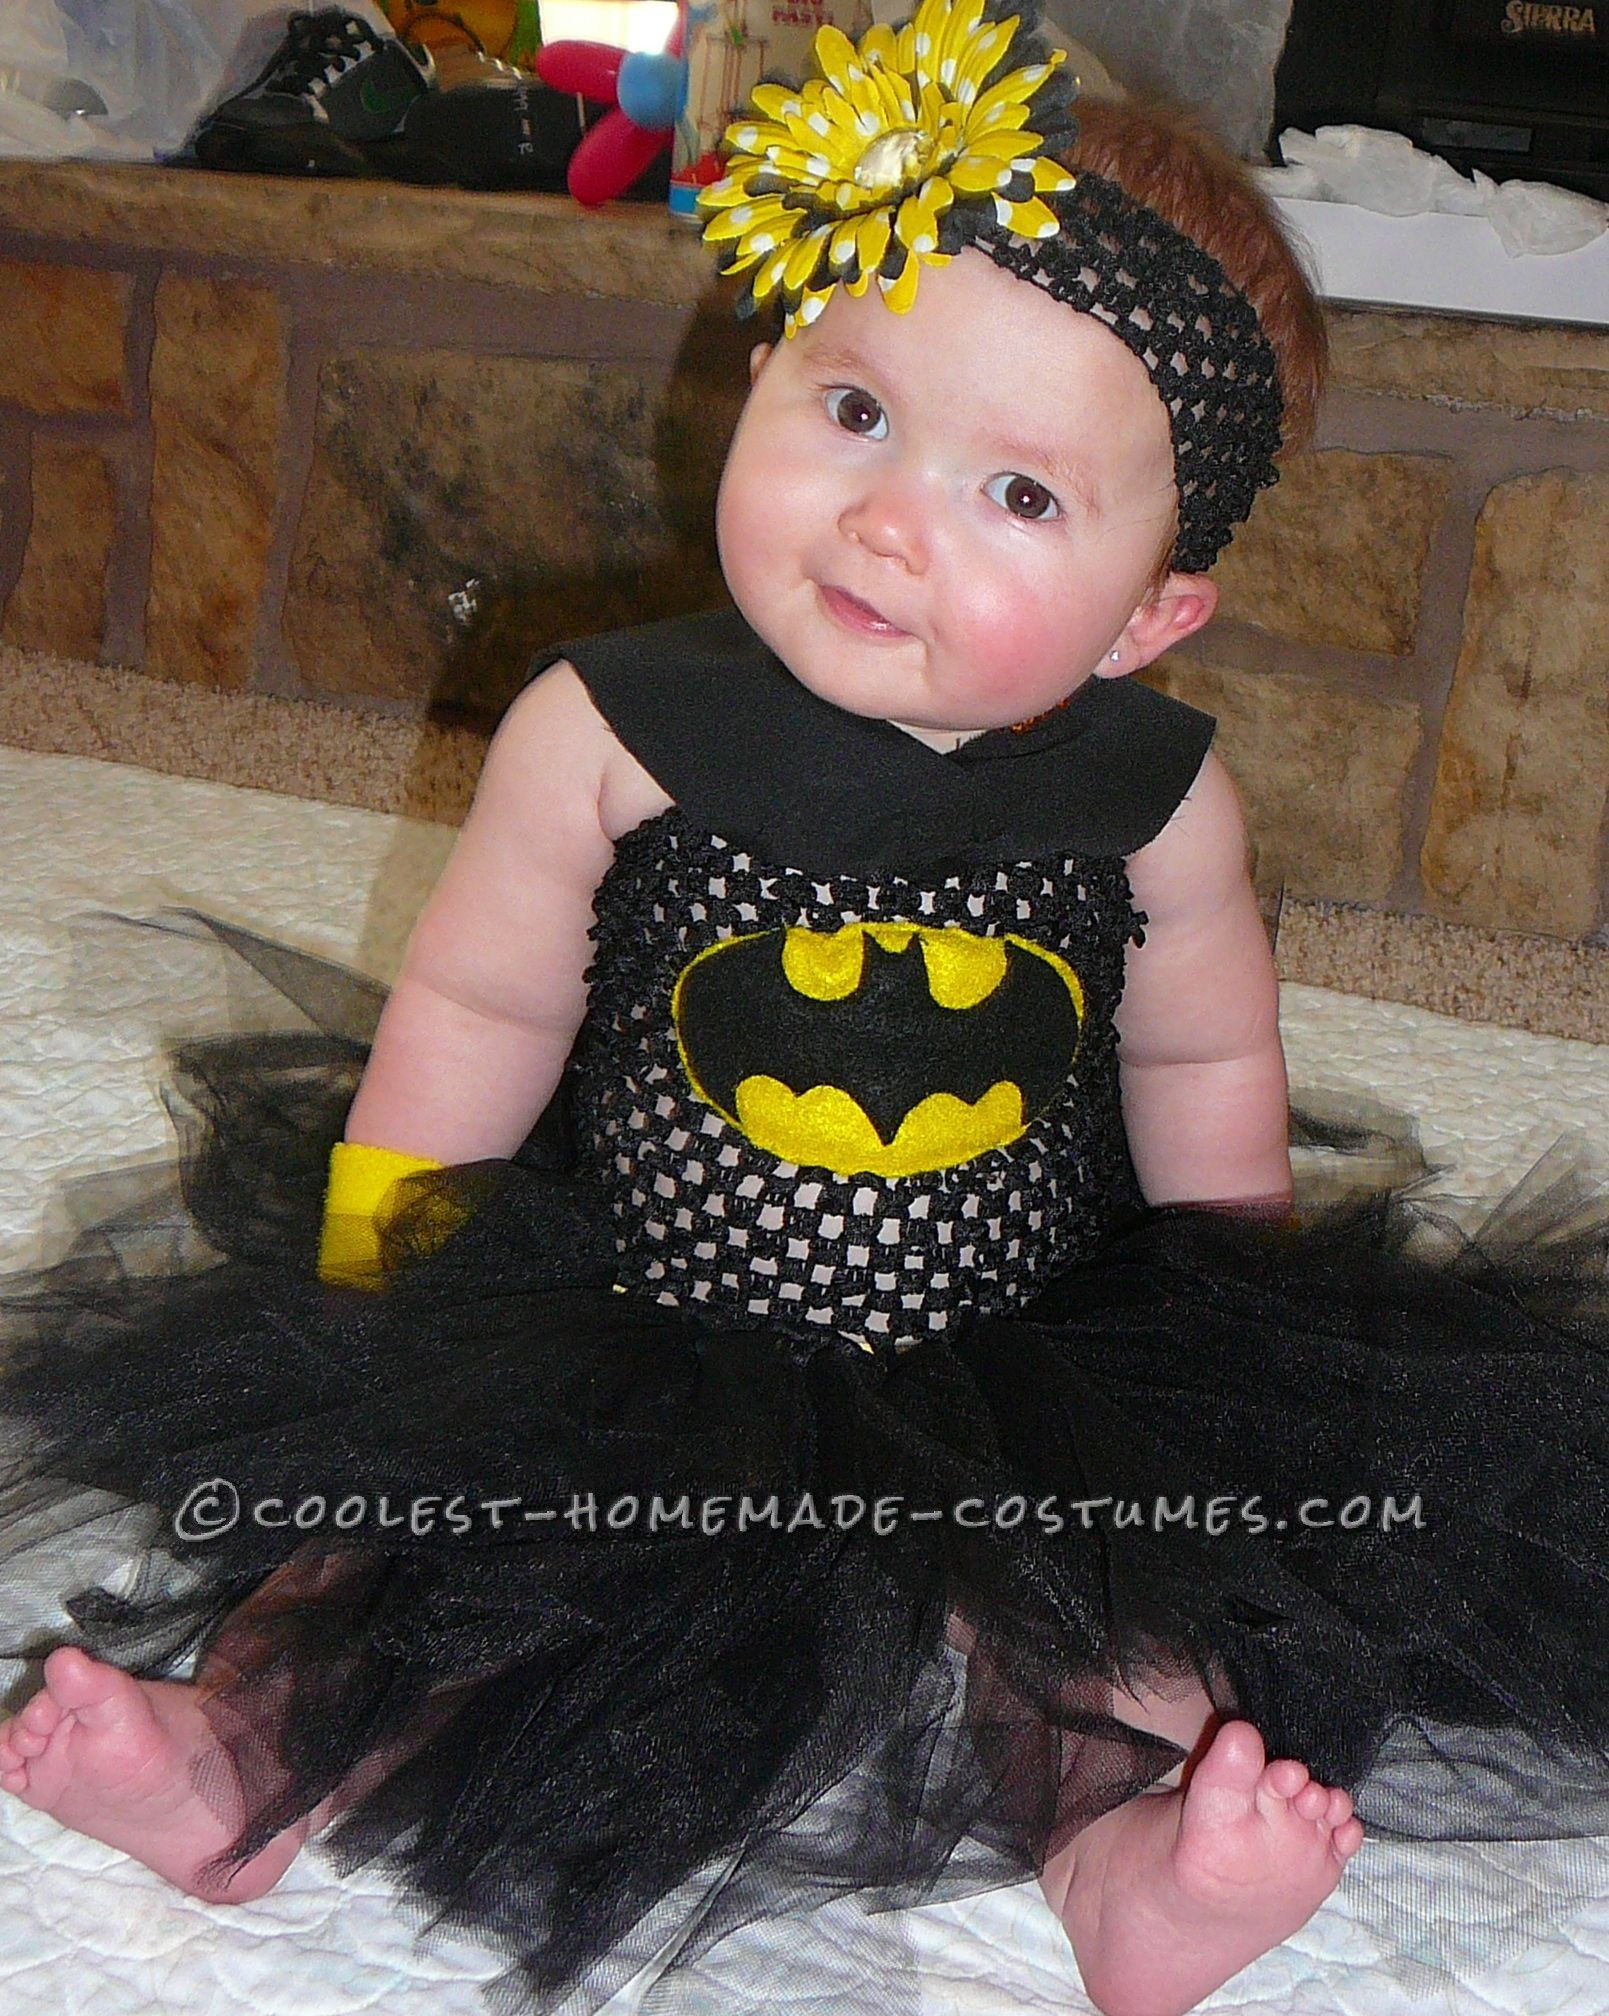 Best ideas about DIY Infant Costume . Save or Pin Best 25 Baby indian costume ideas on Pinterest Now.